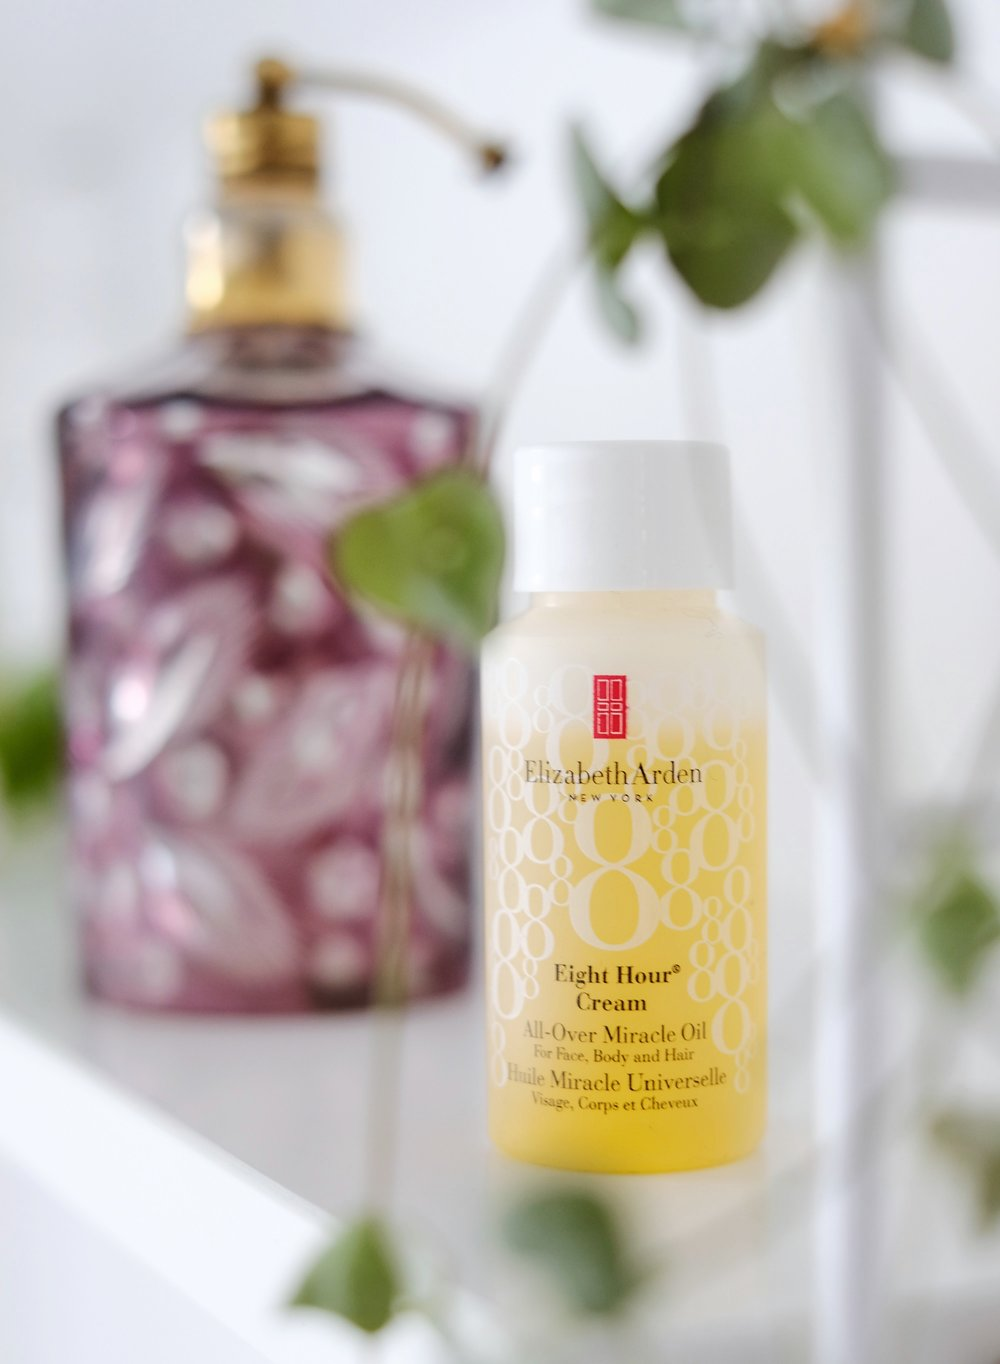 1. Elizabeth Arden Eight Hour All-Over Miracle Oil - This is actually a travel size oil which I had bought at the airport, which is great. It's not only for your face and body, you can also use it to tame frizzy hair and little flyaways. A little goes a long way and I find the oil light and silky and it applies very easily to my body. Get the100ml bottle for £29 here